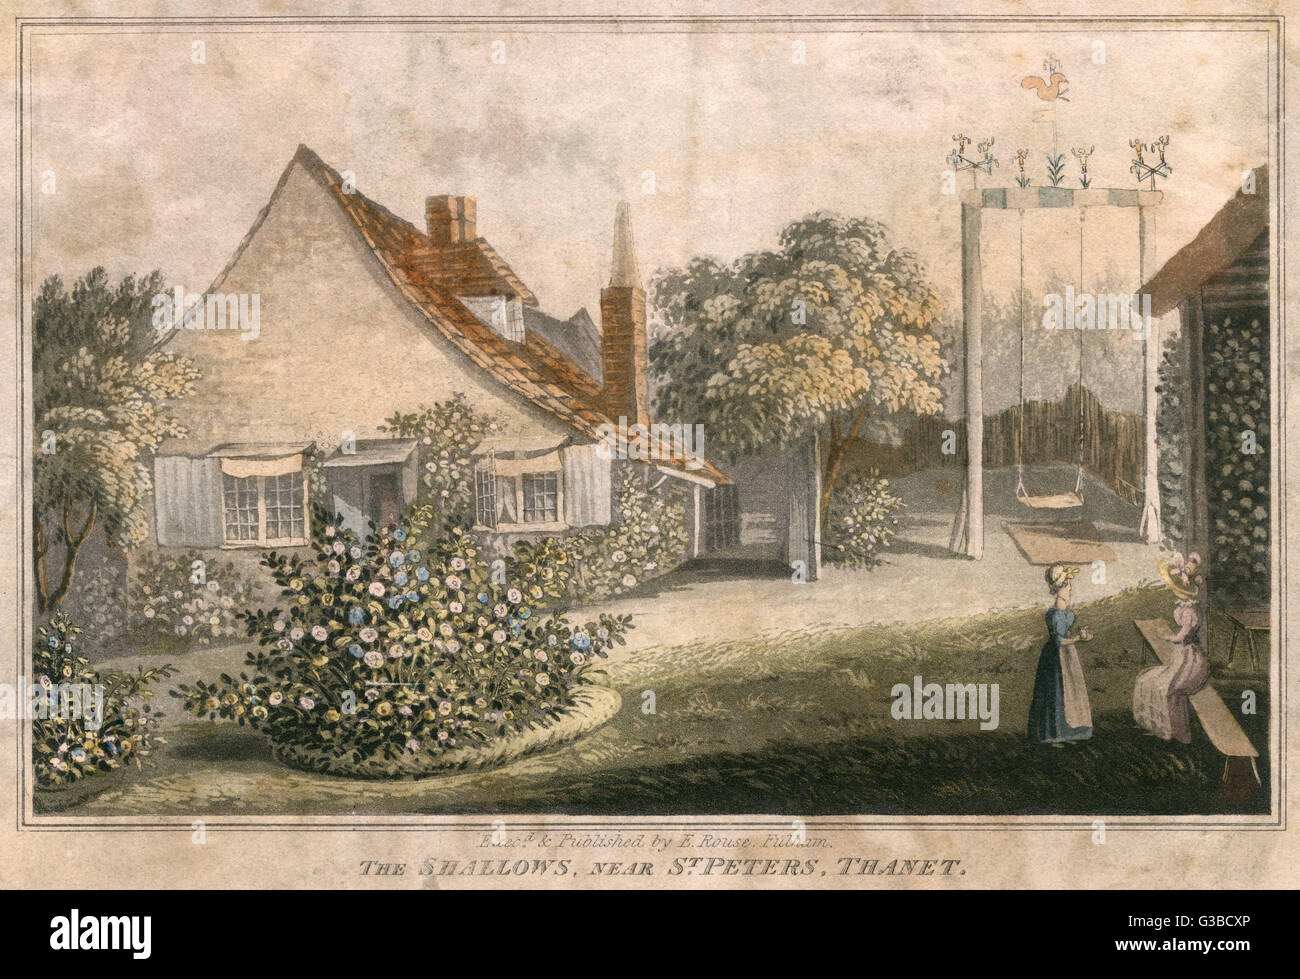 Two ladies in the garden of an  English country cottage in The  Shallows, near St Peters,  Thanet, Kent       Date: - Stock Image